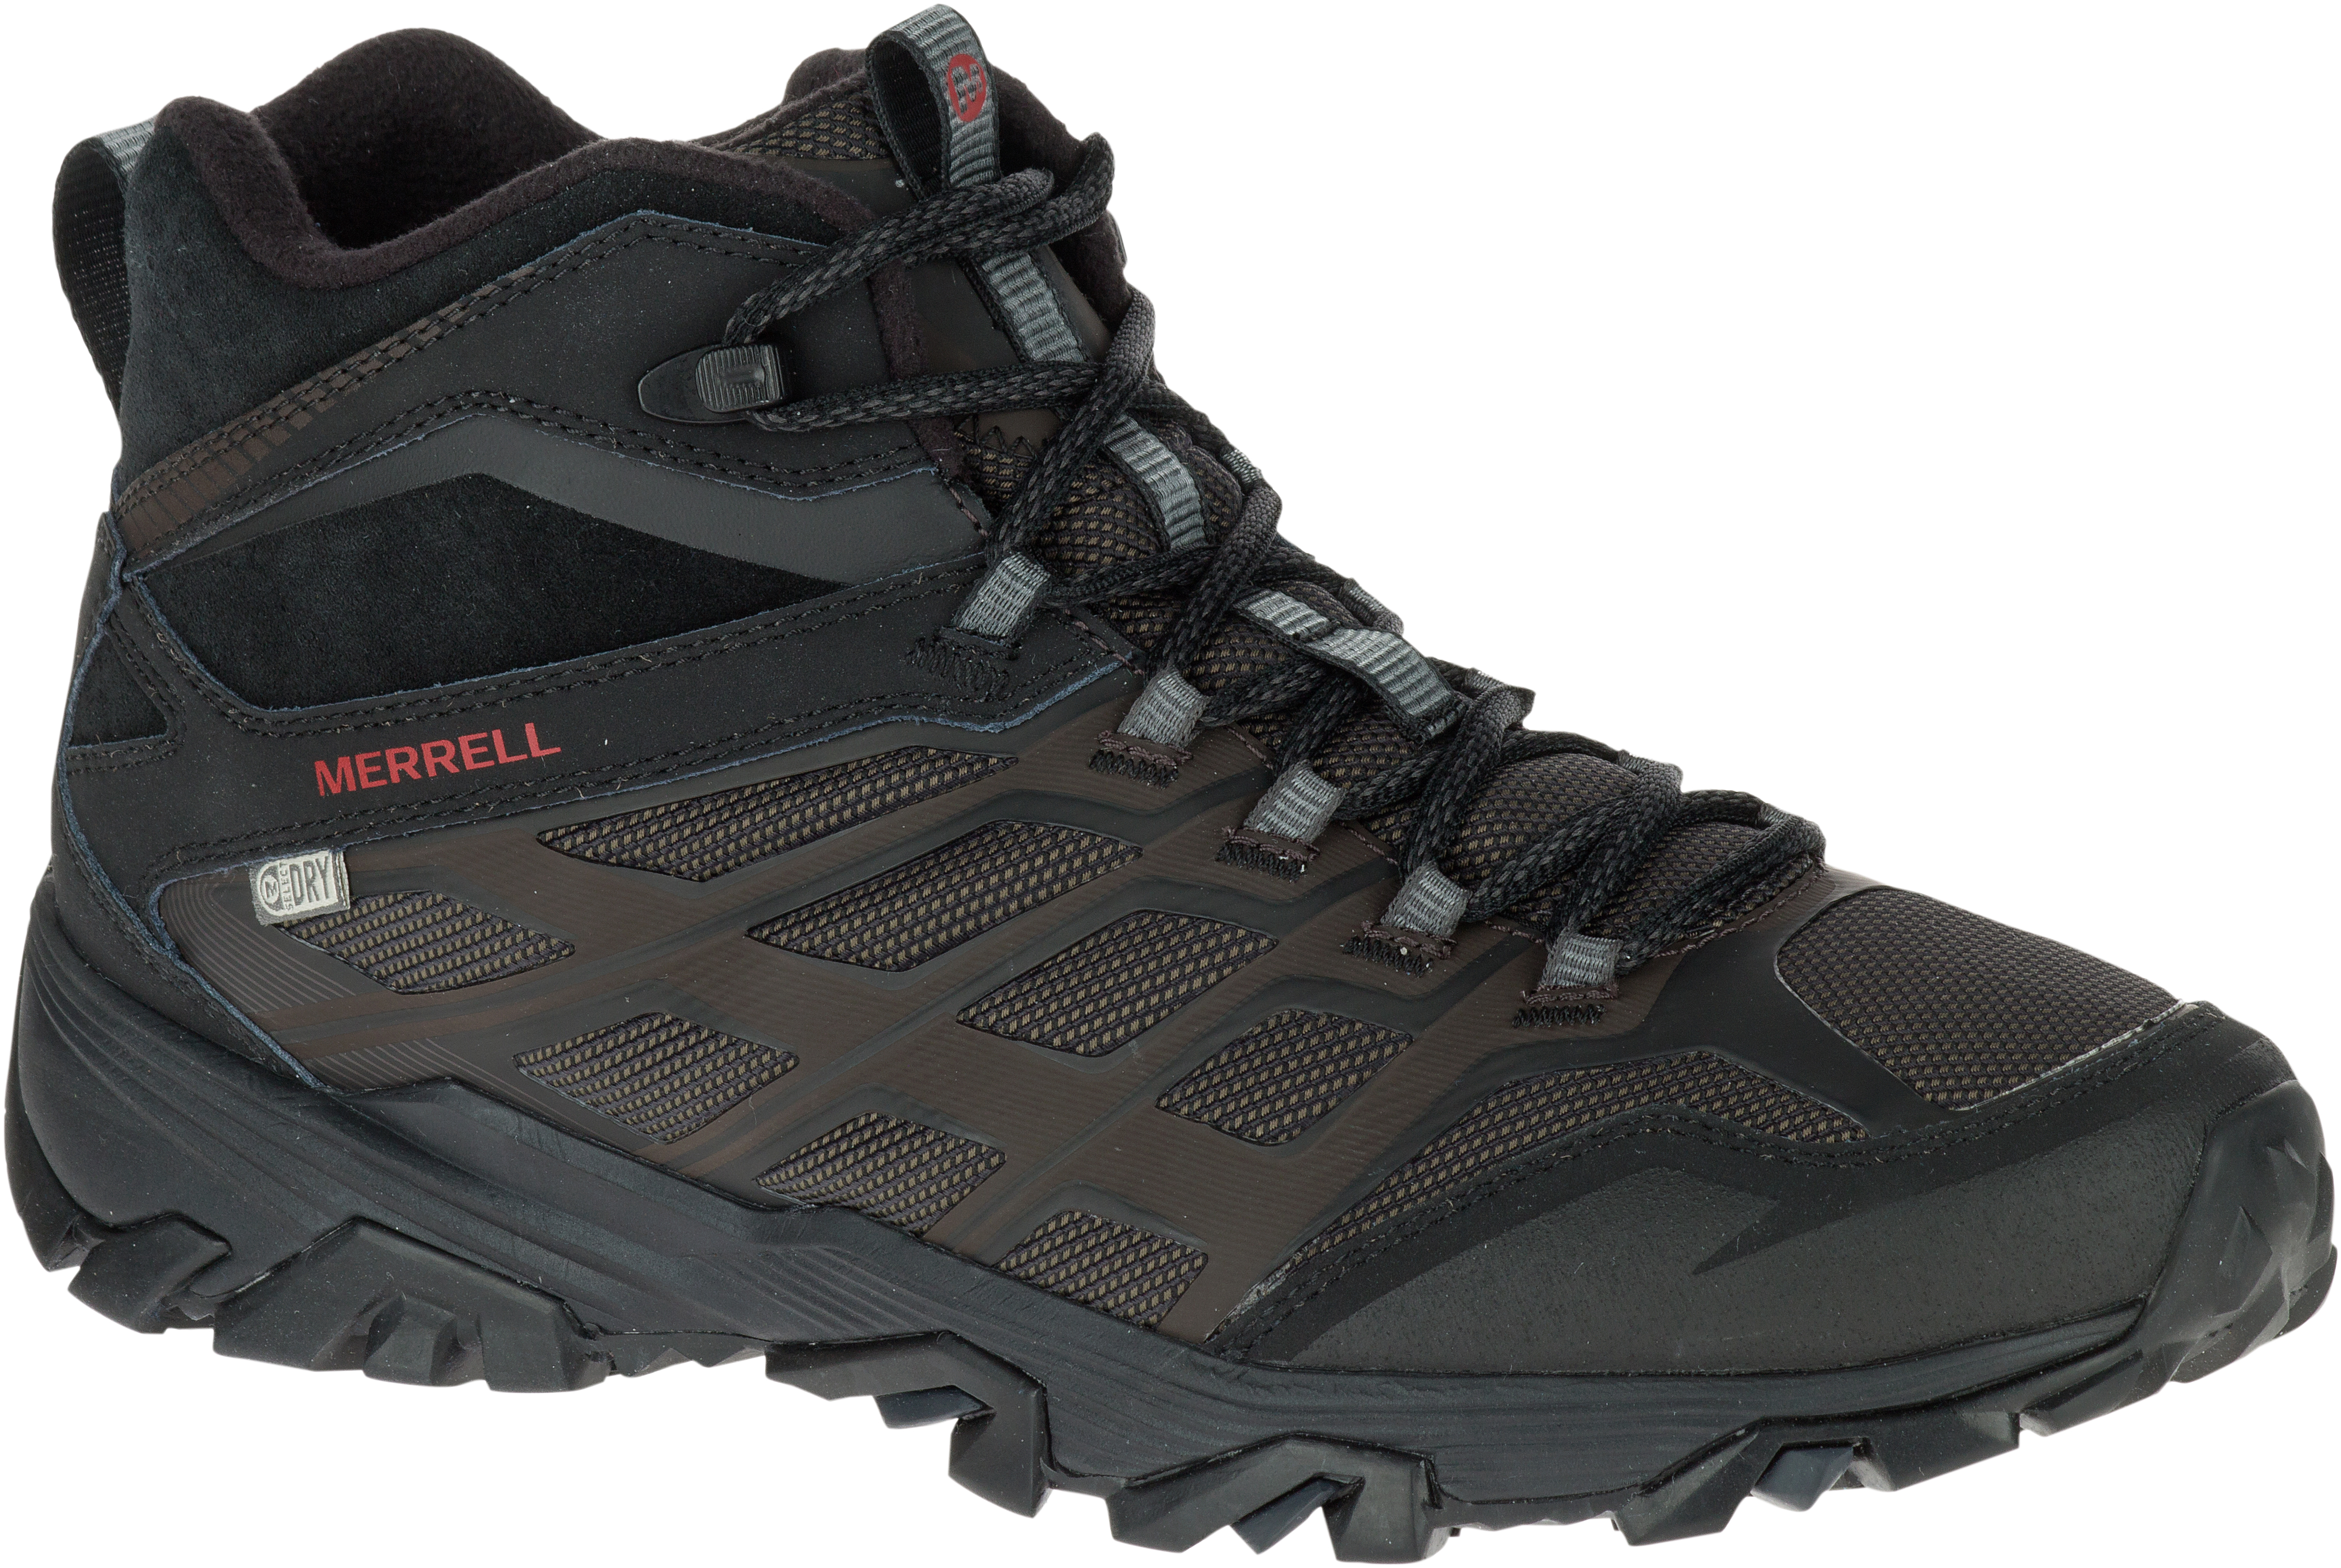 6af4c655 Merrell Moab FST Ice+ Waterproof Thermo Winter Boots - Men's